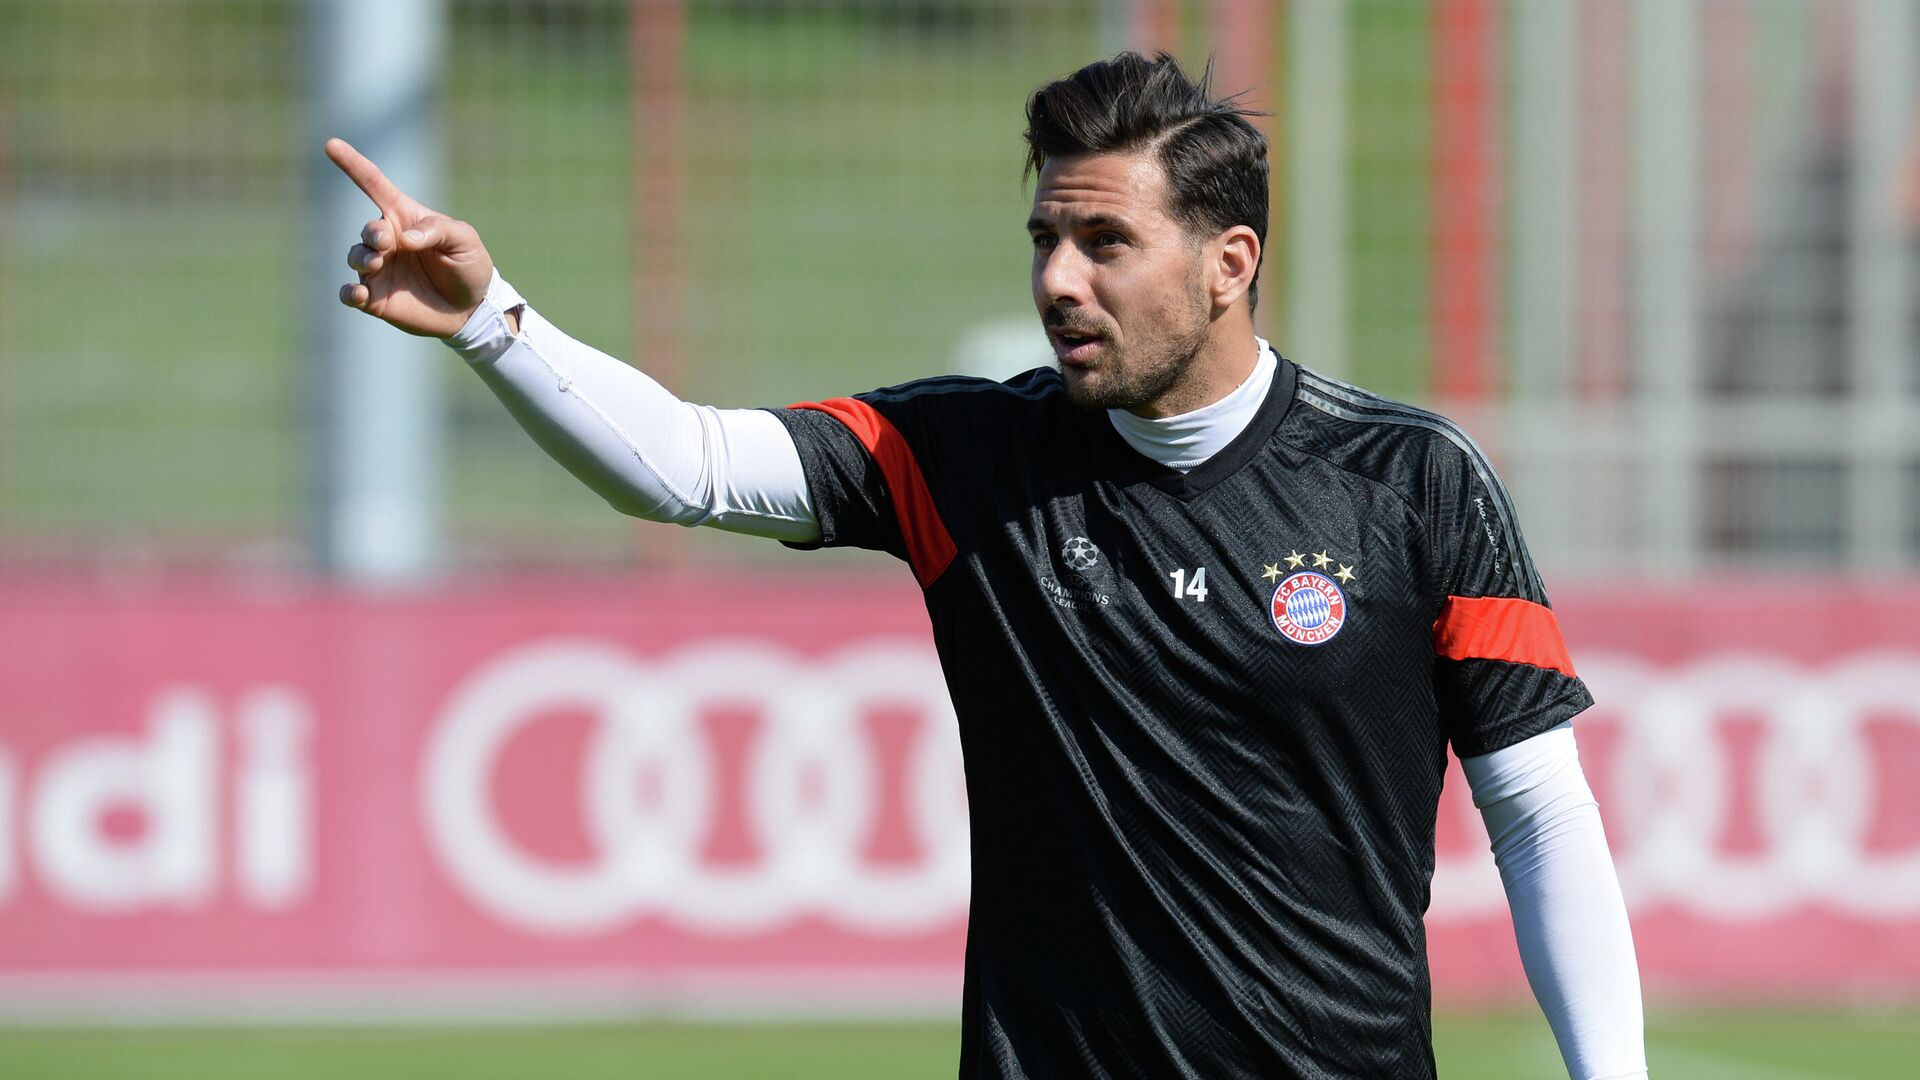 Bayern Munich's Peruvian striker Claudio Pizarro gestures during a training session at the Bayern Munich training ground in Munich, southern Germany on April 20, 2015, a day ahead of the UEFA Champions League quarter-final second leg football match against FC Porto on April 21. AFP PHOTO / CHRISTOF STACHE (Photo by CHRISTOF STACHE / AFP) - РИА Новости, 1920, 15.09.2020